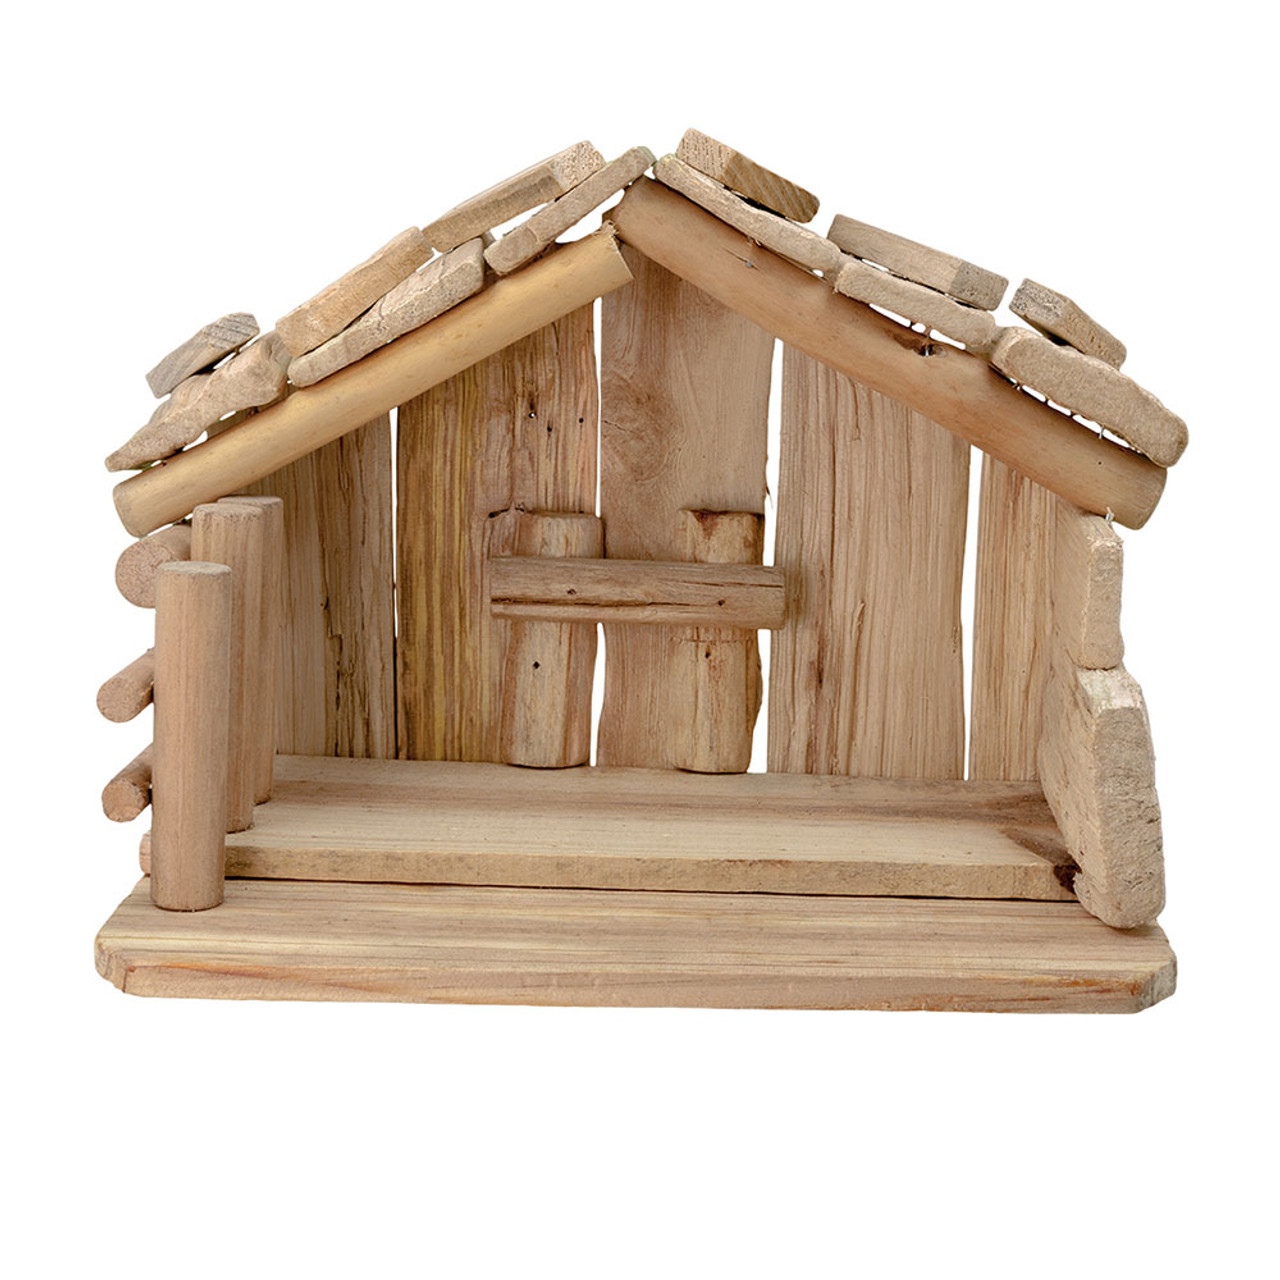 Wooden Stable 9-1/2x7IN